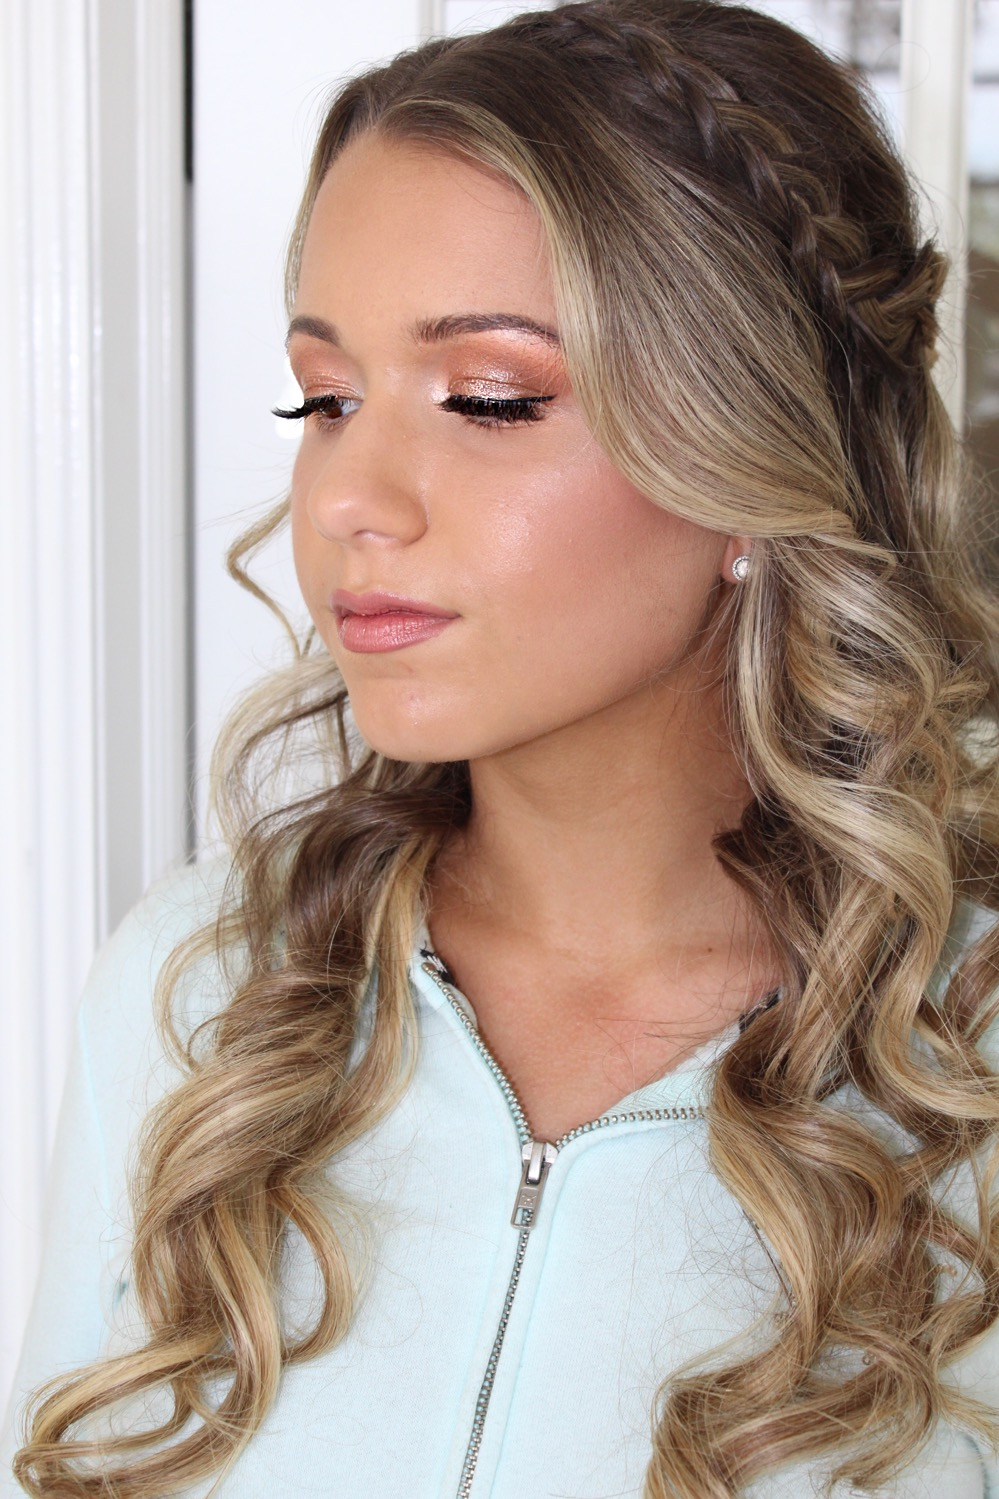 Soft glam for this beauties prom